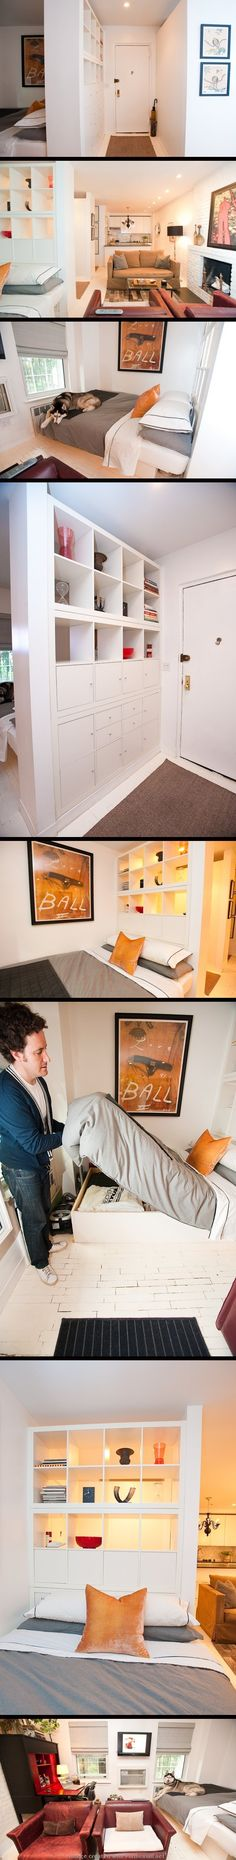 Clever small space solution for simultaneously creating a headboard, space division and storage.  From Apartment Therapy: http://www.apartmenttherapy.com/house-tour-jays-chelsea-loft-n-1-89223#_ - created via http://pinthemall.net